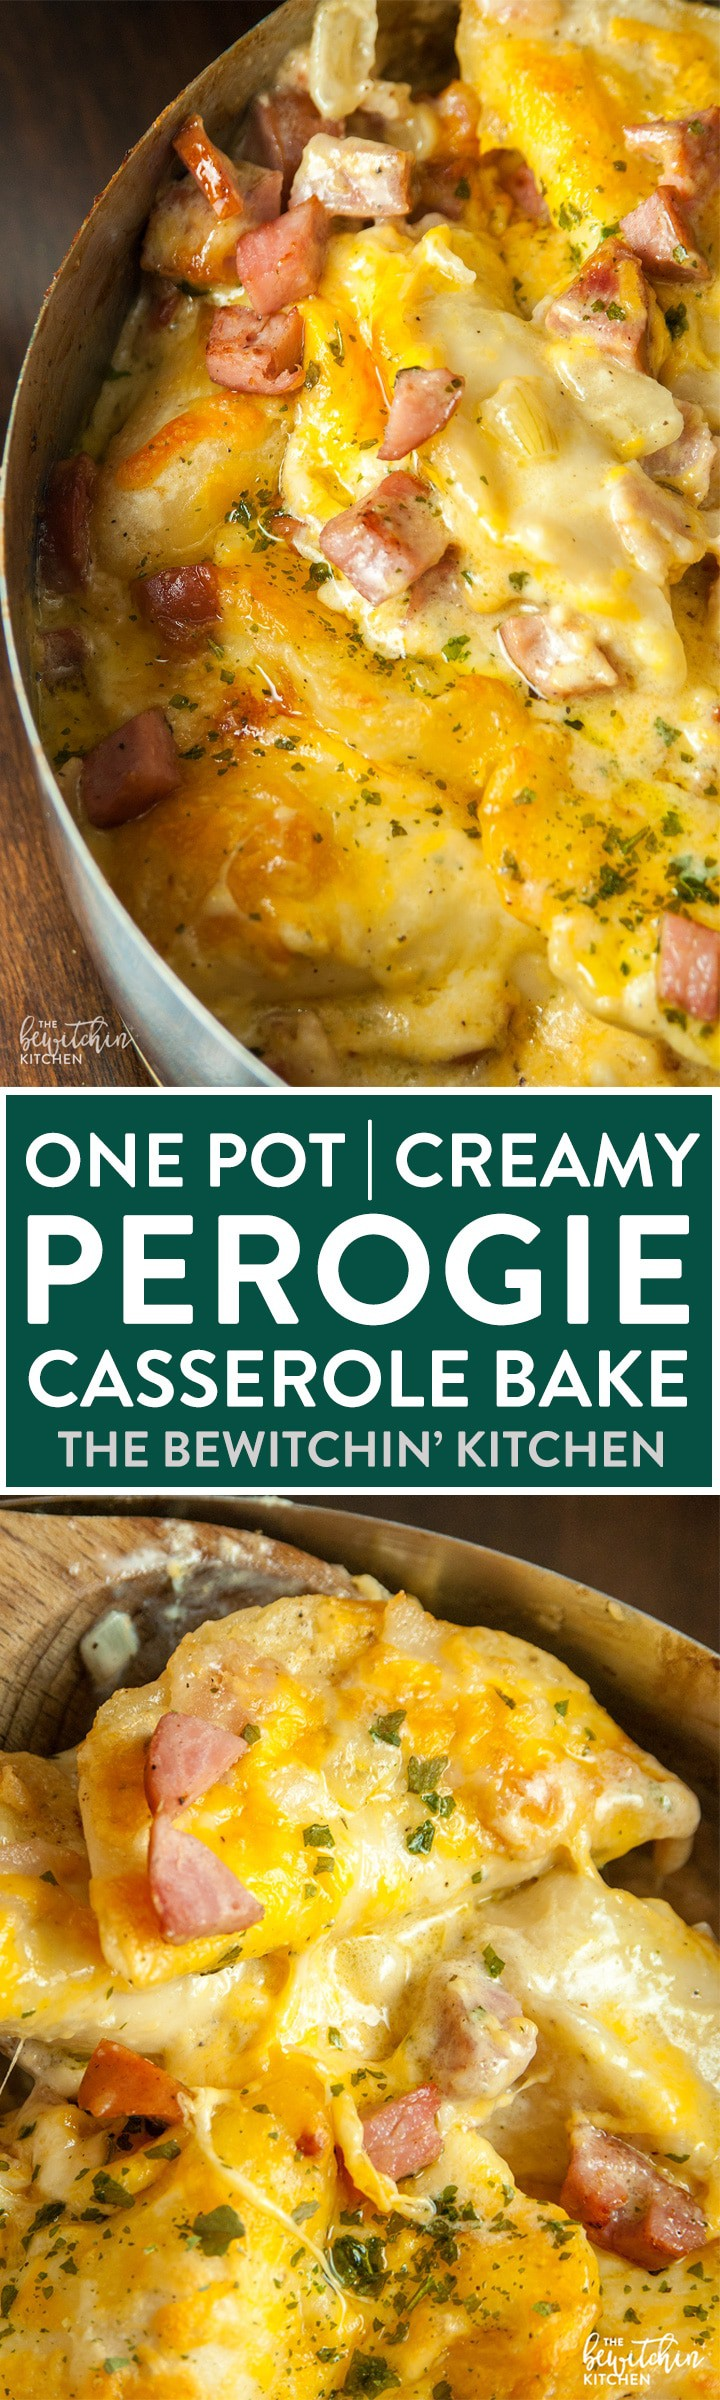 One pot perogie casserole bake - these creamy baked pierogies are AMAZING and a super easy dinner recipe! Perogies, cream, butter, garlic sausage, bacon, onions and cheese. Hello comfort food. Goodbye skinny jeans.